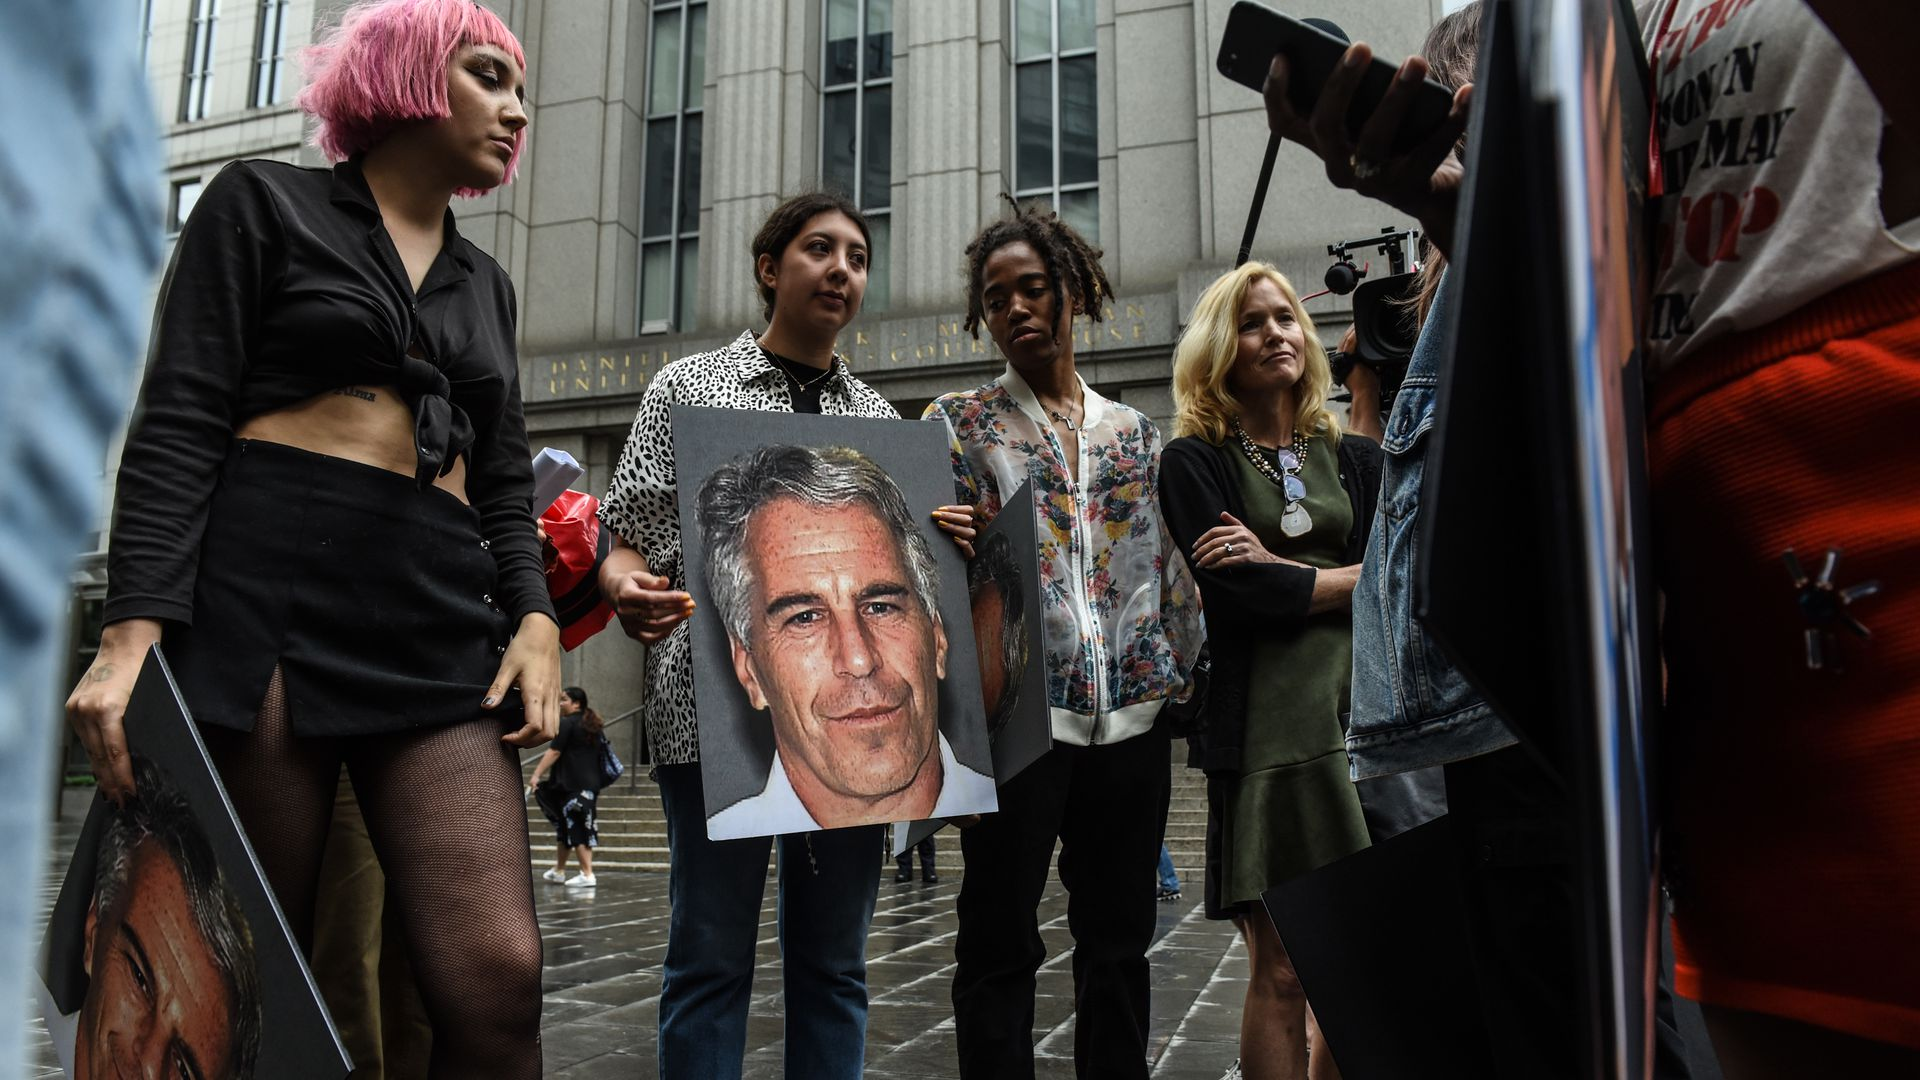 What we know: The life and death of Jeffrey Epstein - Axios